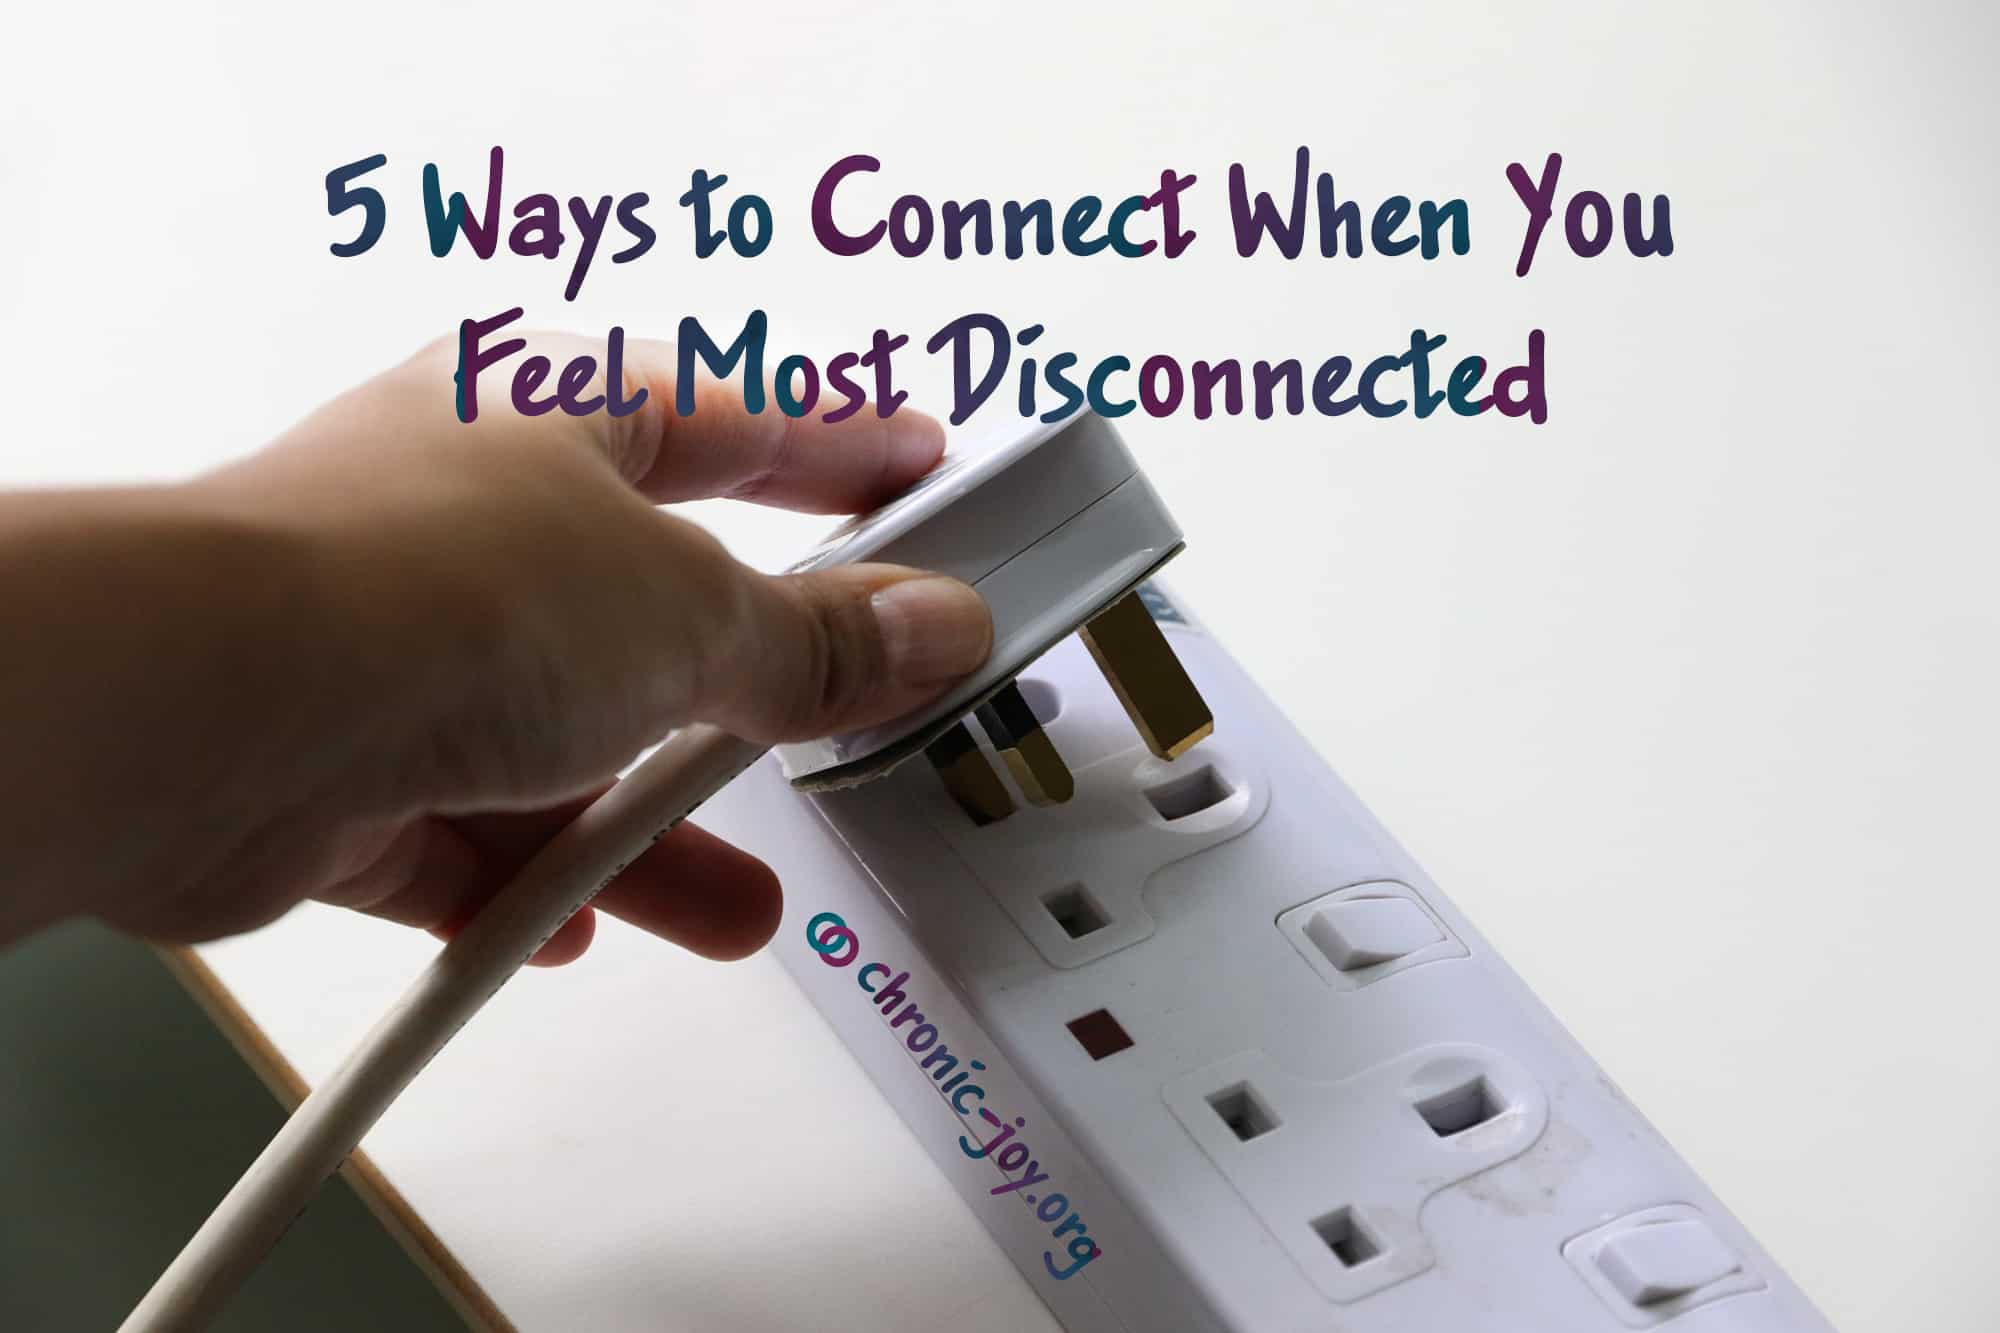 5 Ways to Connect When You Feel Most Disconnected 🔌